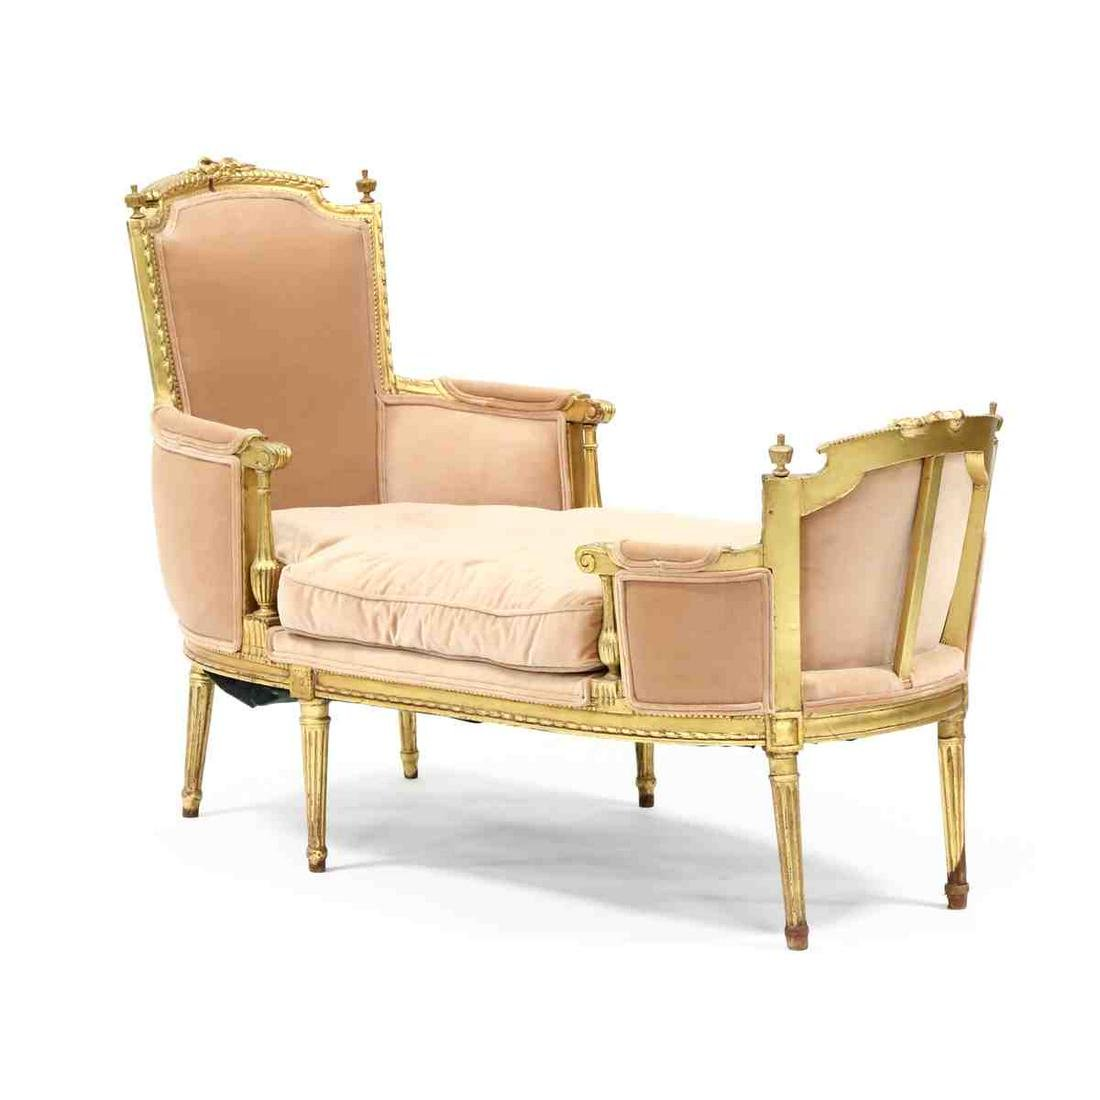 Louis XVI Style Carved and Gilt Chaise Lounge